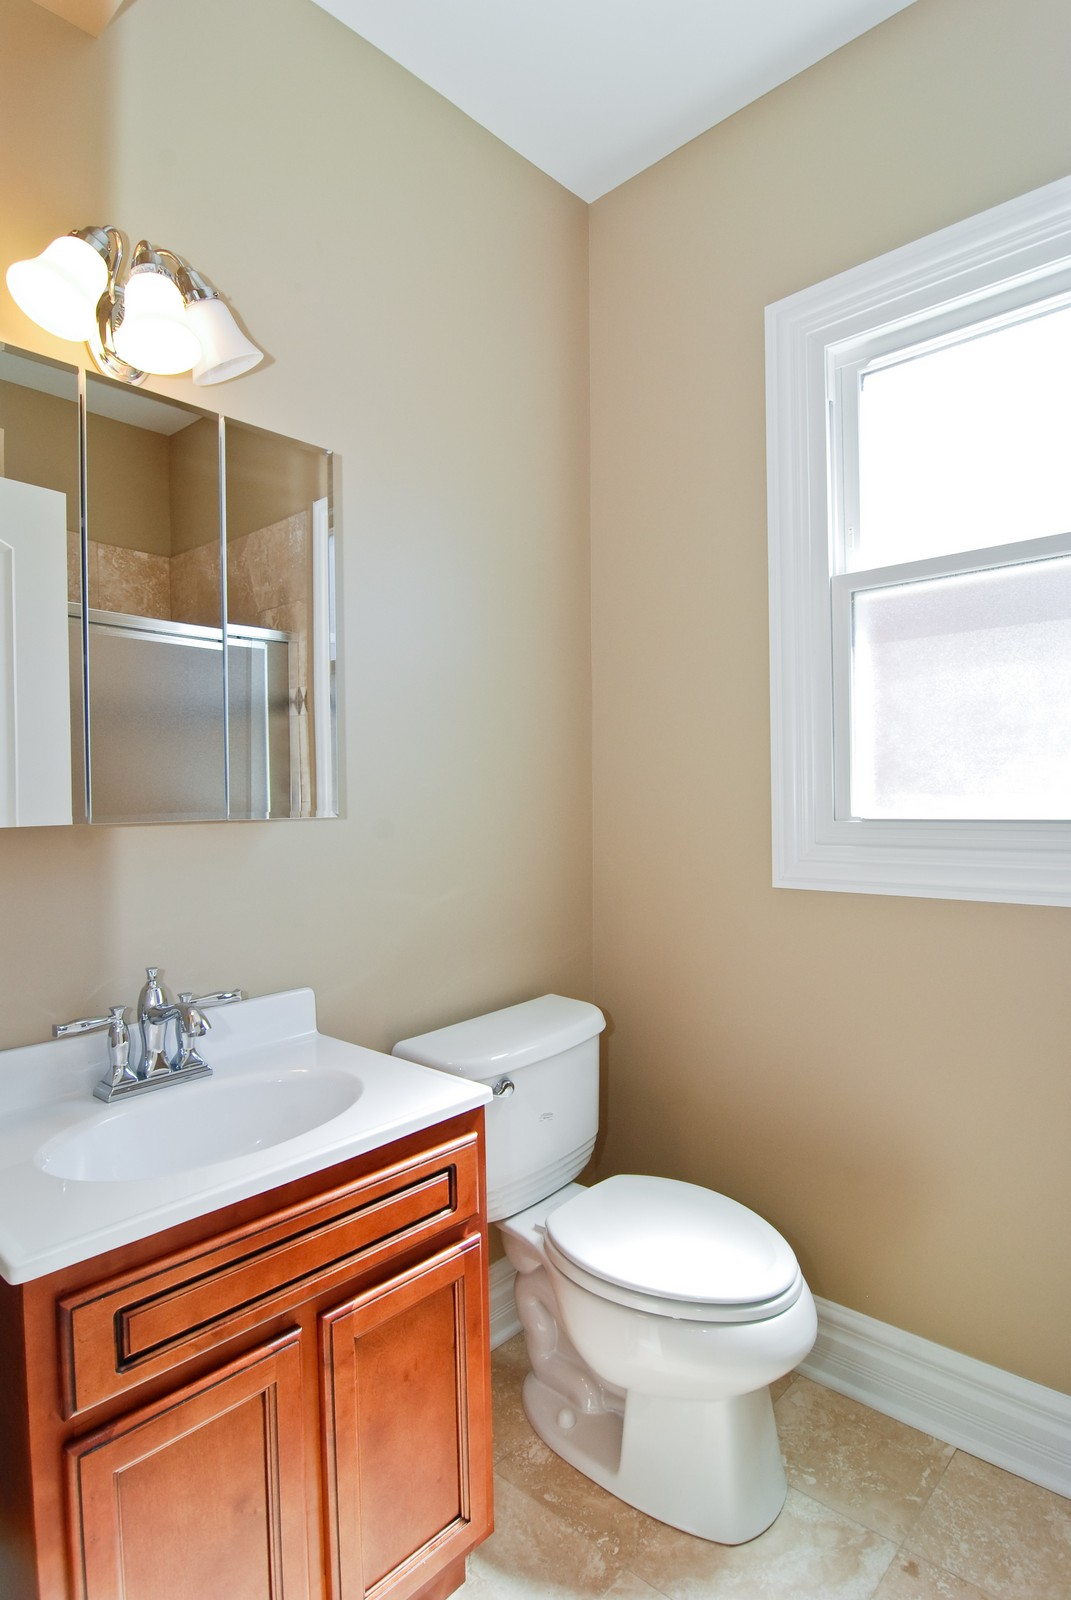 Real Estate Photography - 4334 N. Central Park, Chicago, IL, 60618 - Master Bathroom